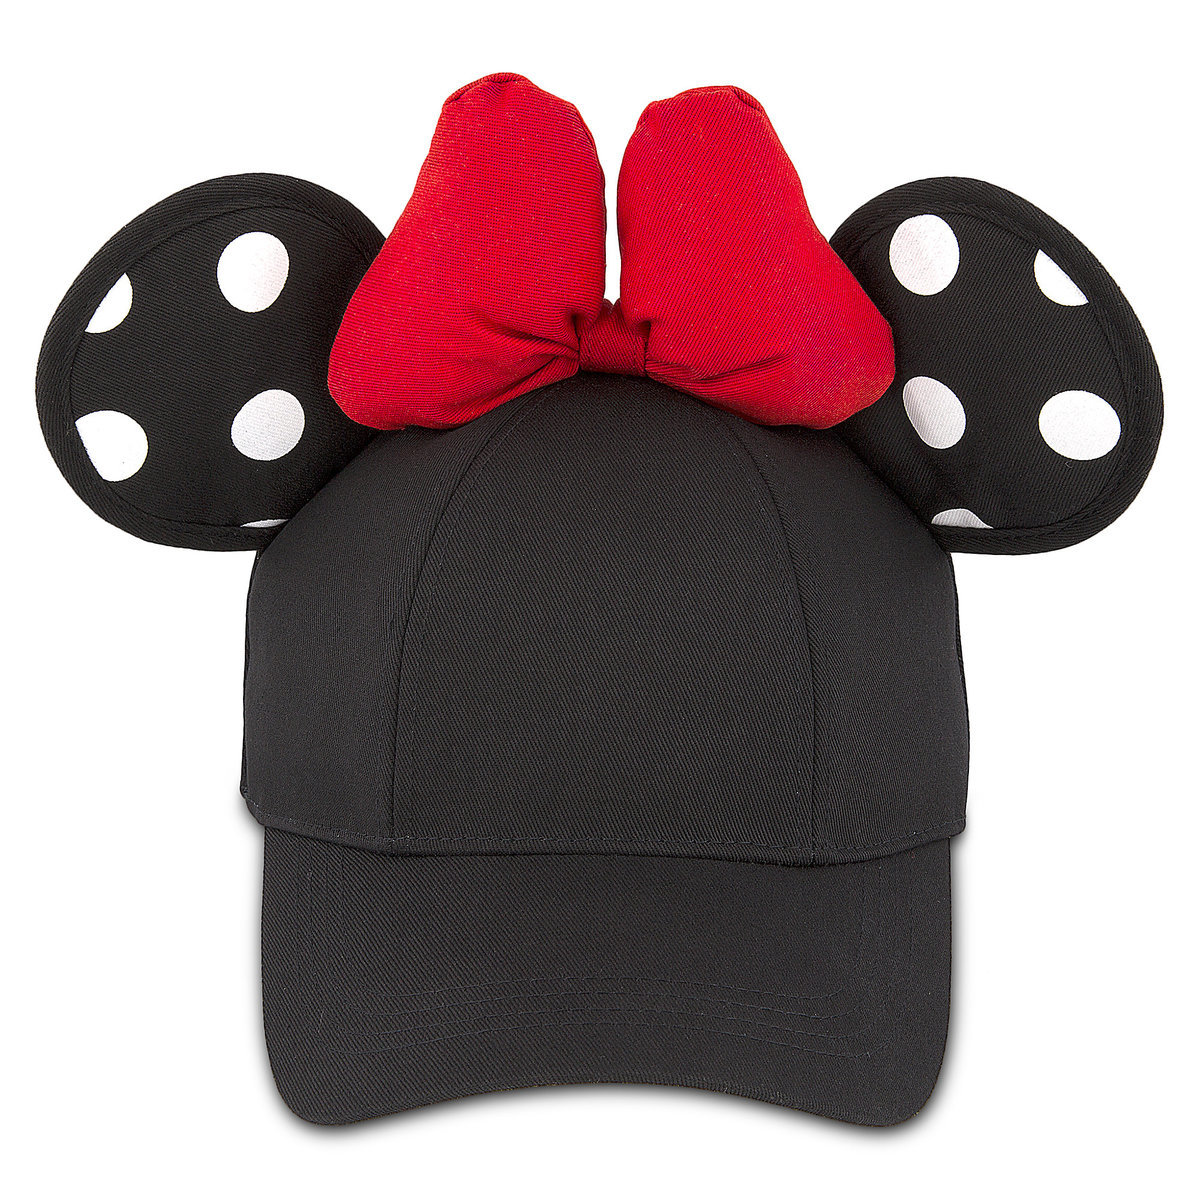 2f4c5cef8fc70 Disney Baseball Cap - Minnie Mouse Polka Dot Ears